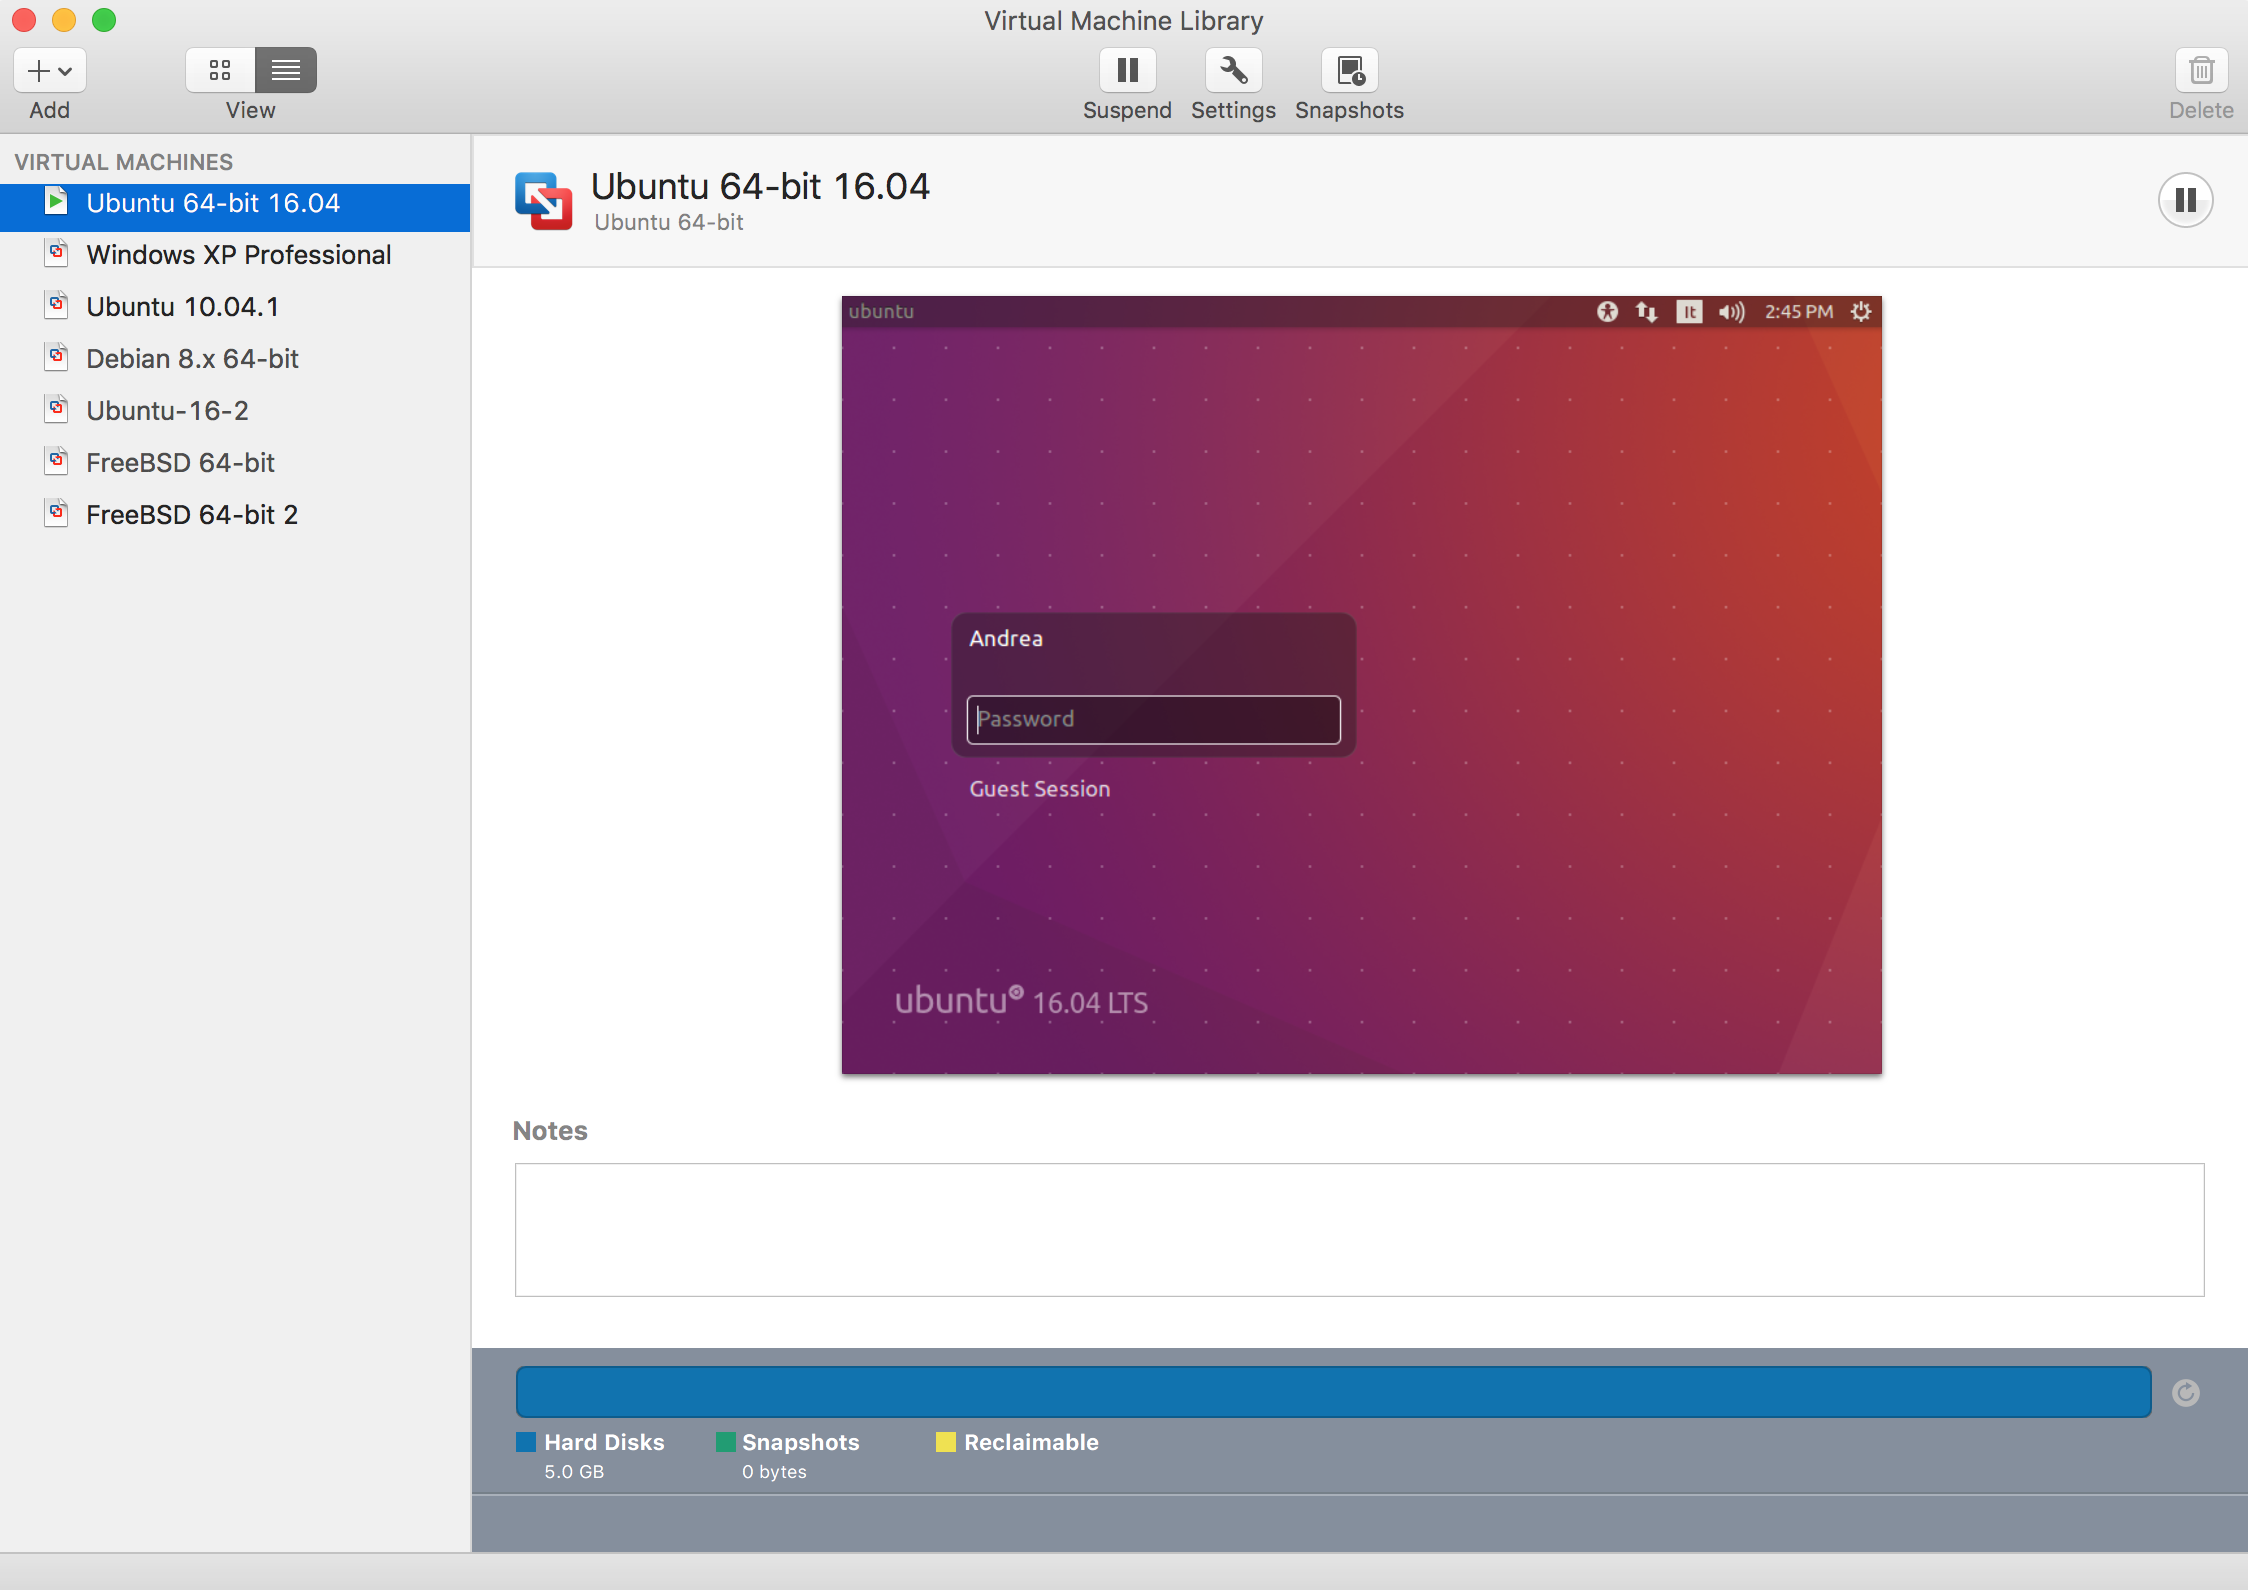 Vmware Fusion interface for the virtual machines library. When a machine is booted, it will actually run in a distinct window that can then be made full screen. This installation is hosting three Ubuntu virtual machine, a Debian virtual machine, two BSD machines and windows XP machine.